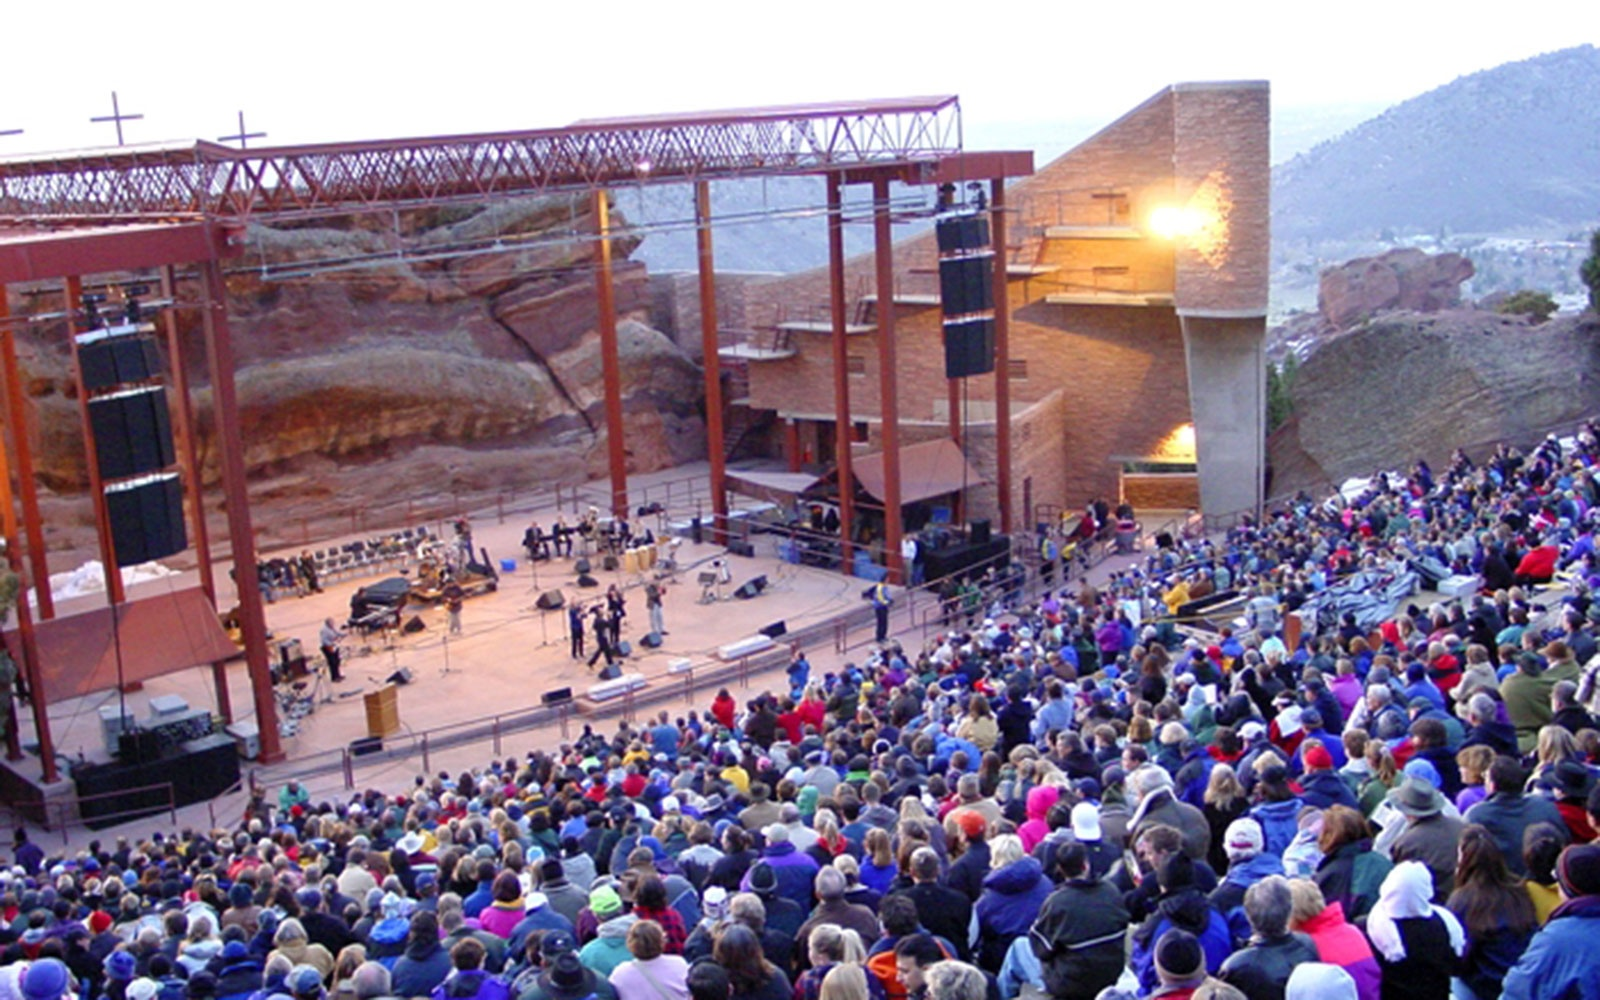 Red Rocks Amphitheatre, Morrison, CO